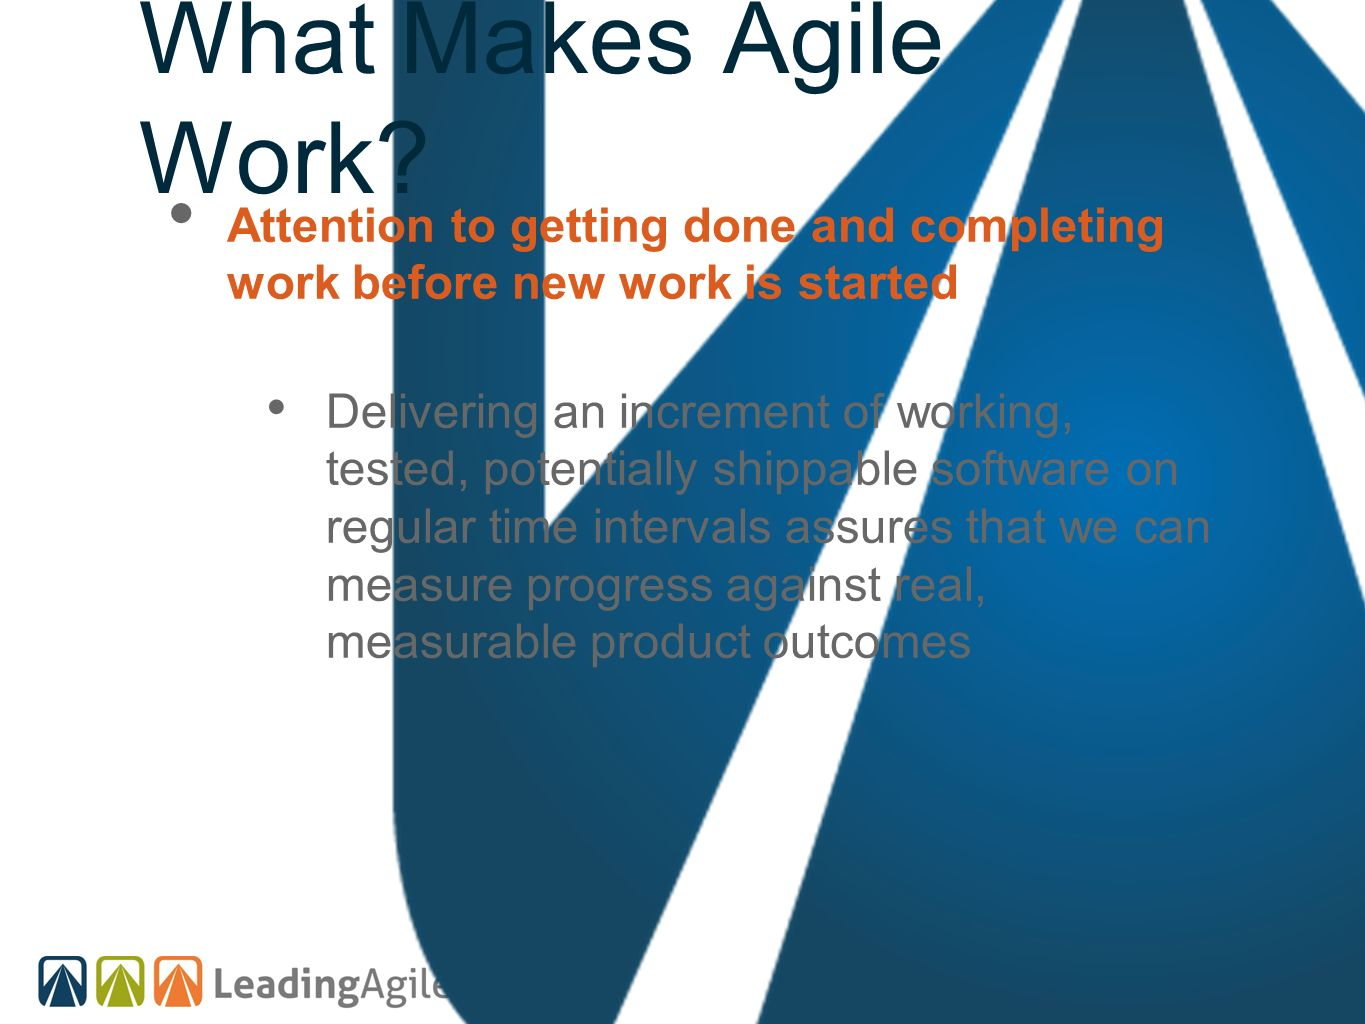 What Makes Agile Work Attention to getting done and completing work before new work is started.